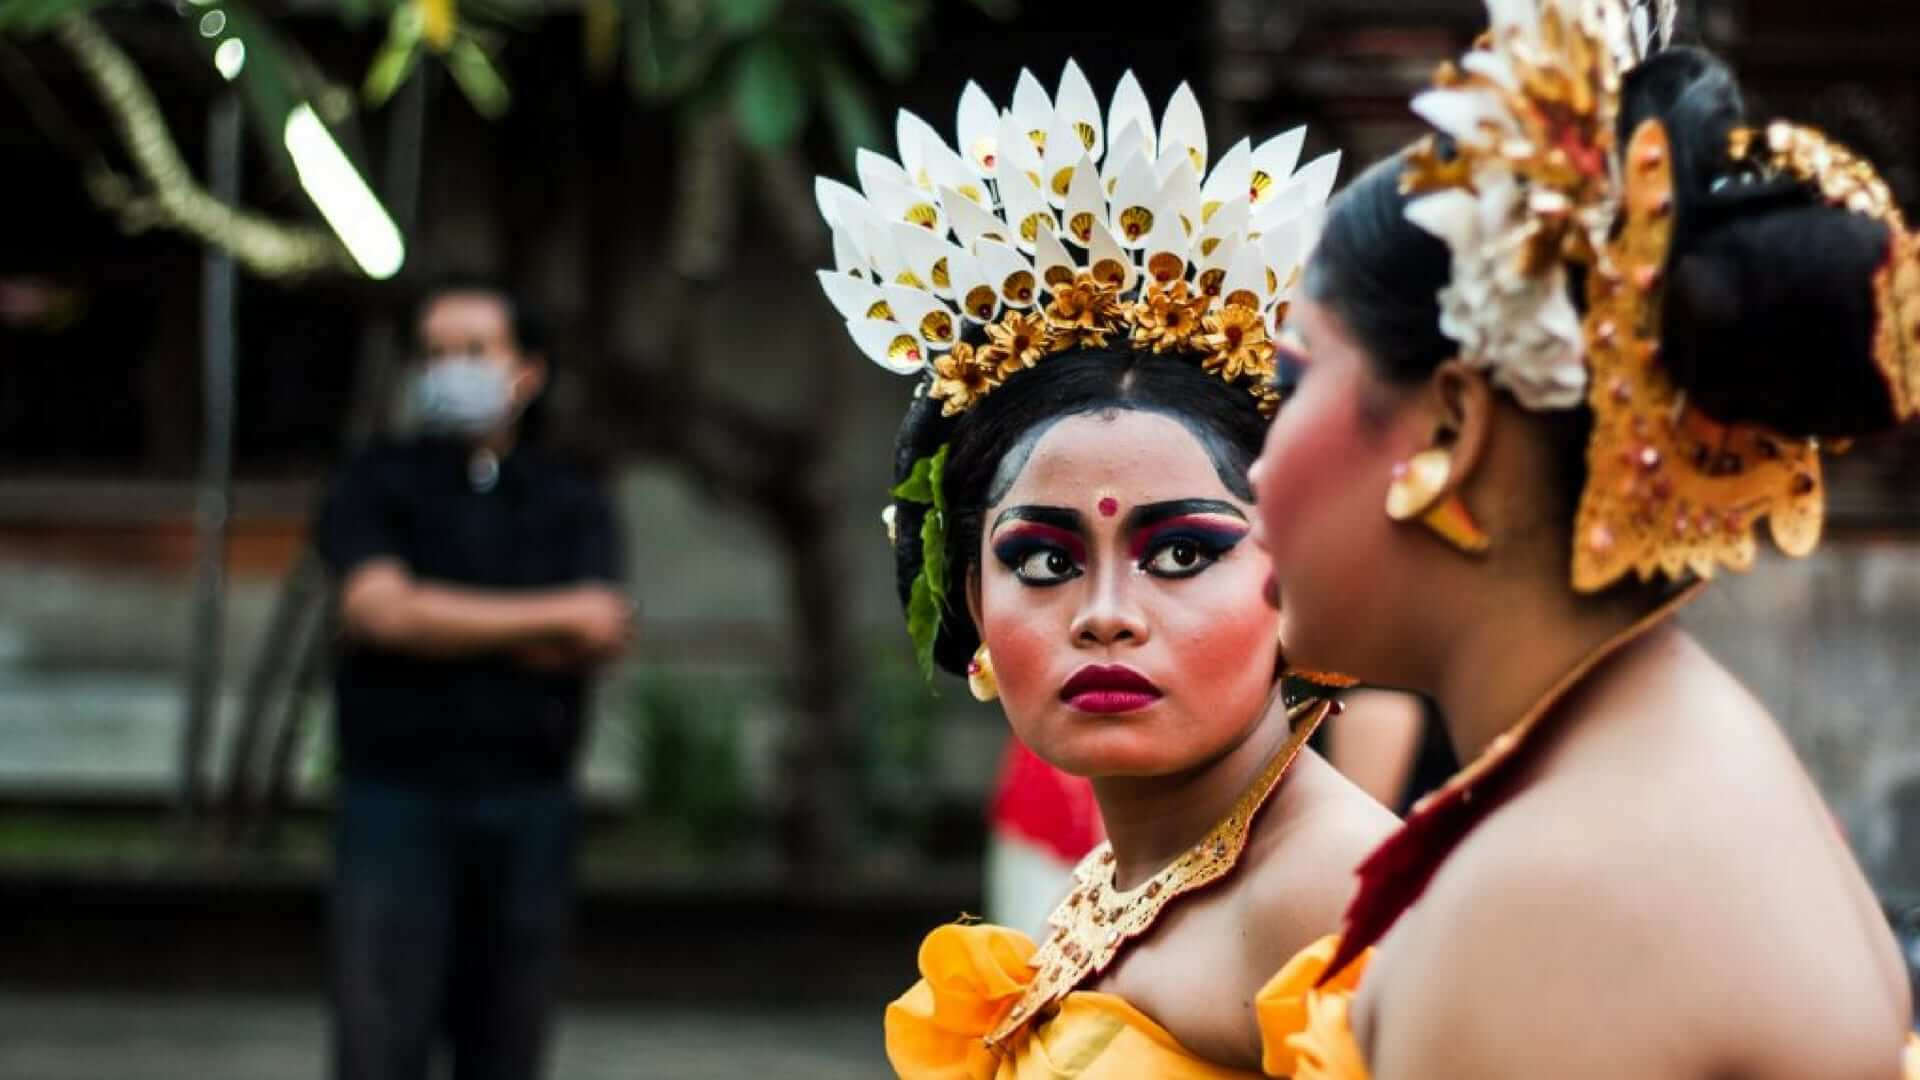 Hindu women talking to eachother in Balinese clothes in Bali.